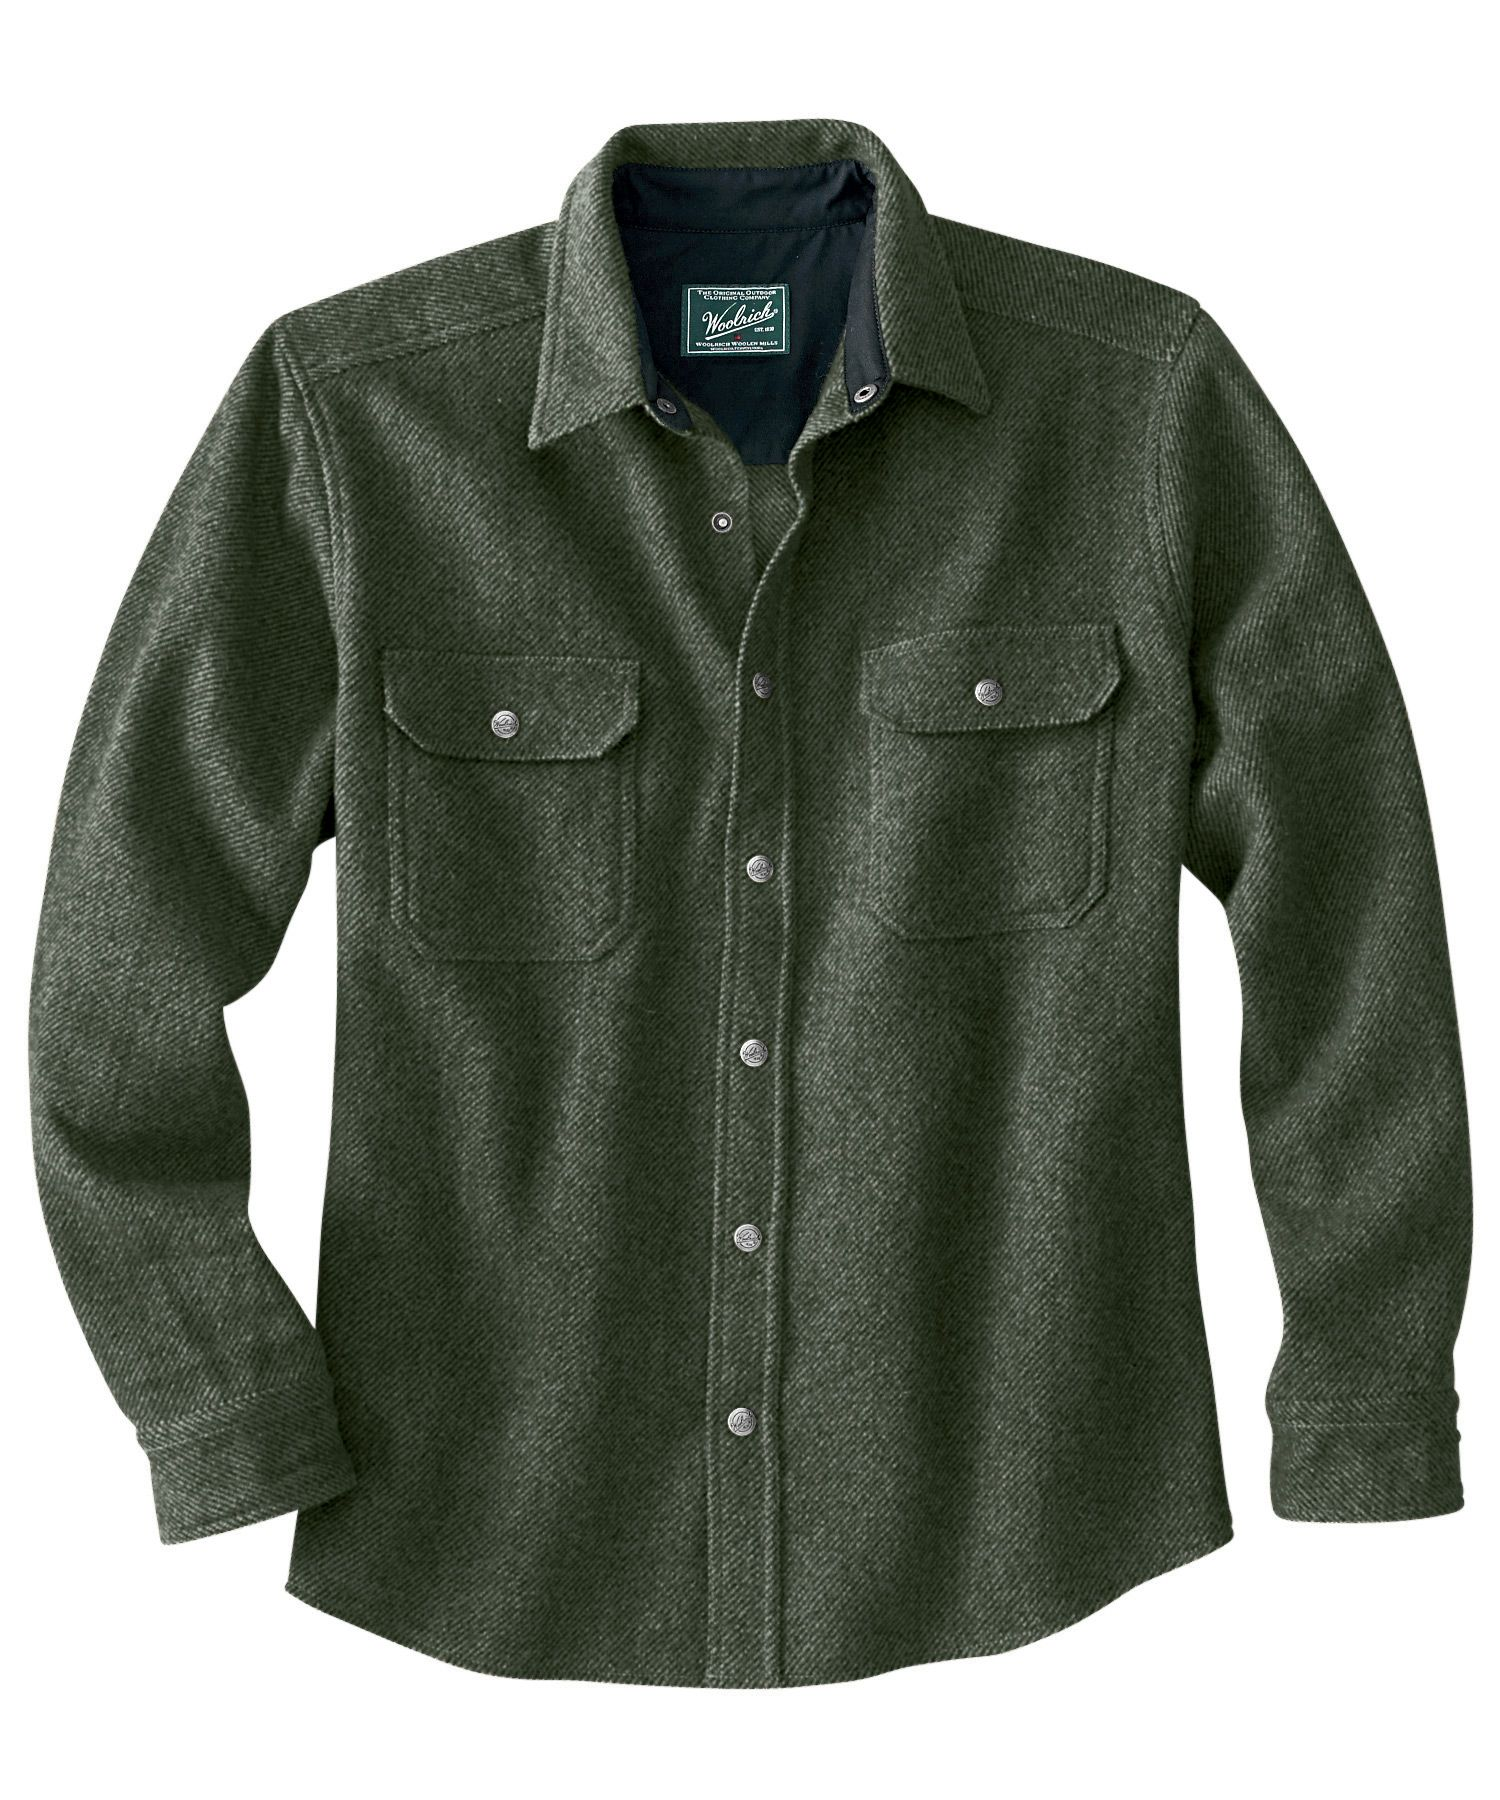 Men's Wool Alaskan Shirt - Woolrich $119 | Patrick | Pinterest ...